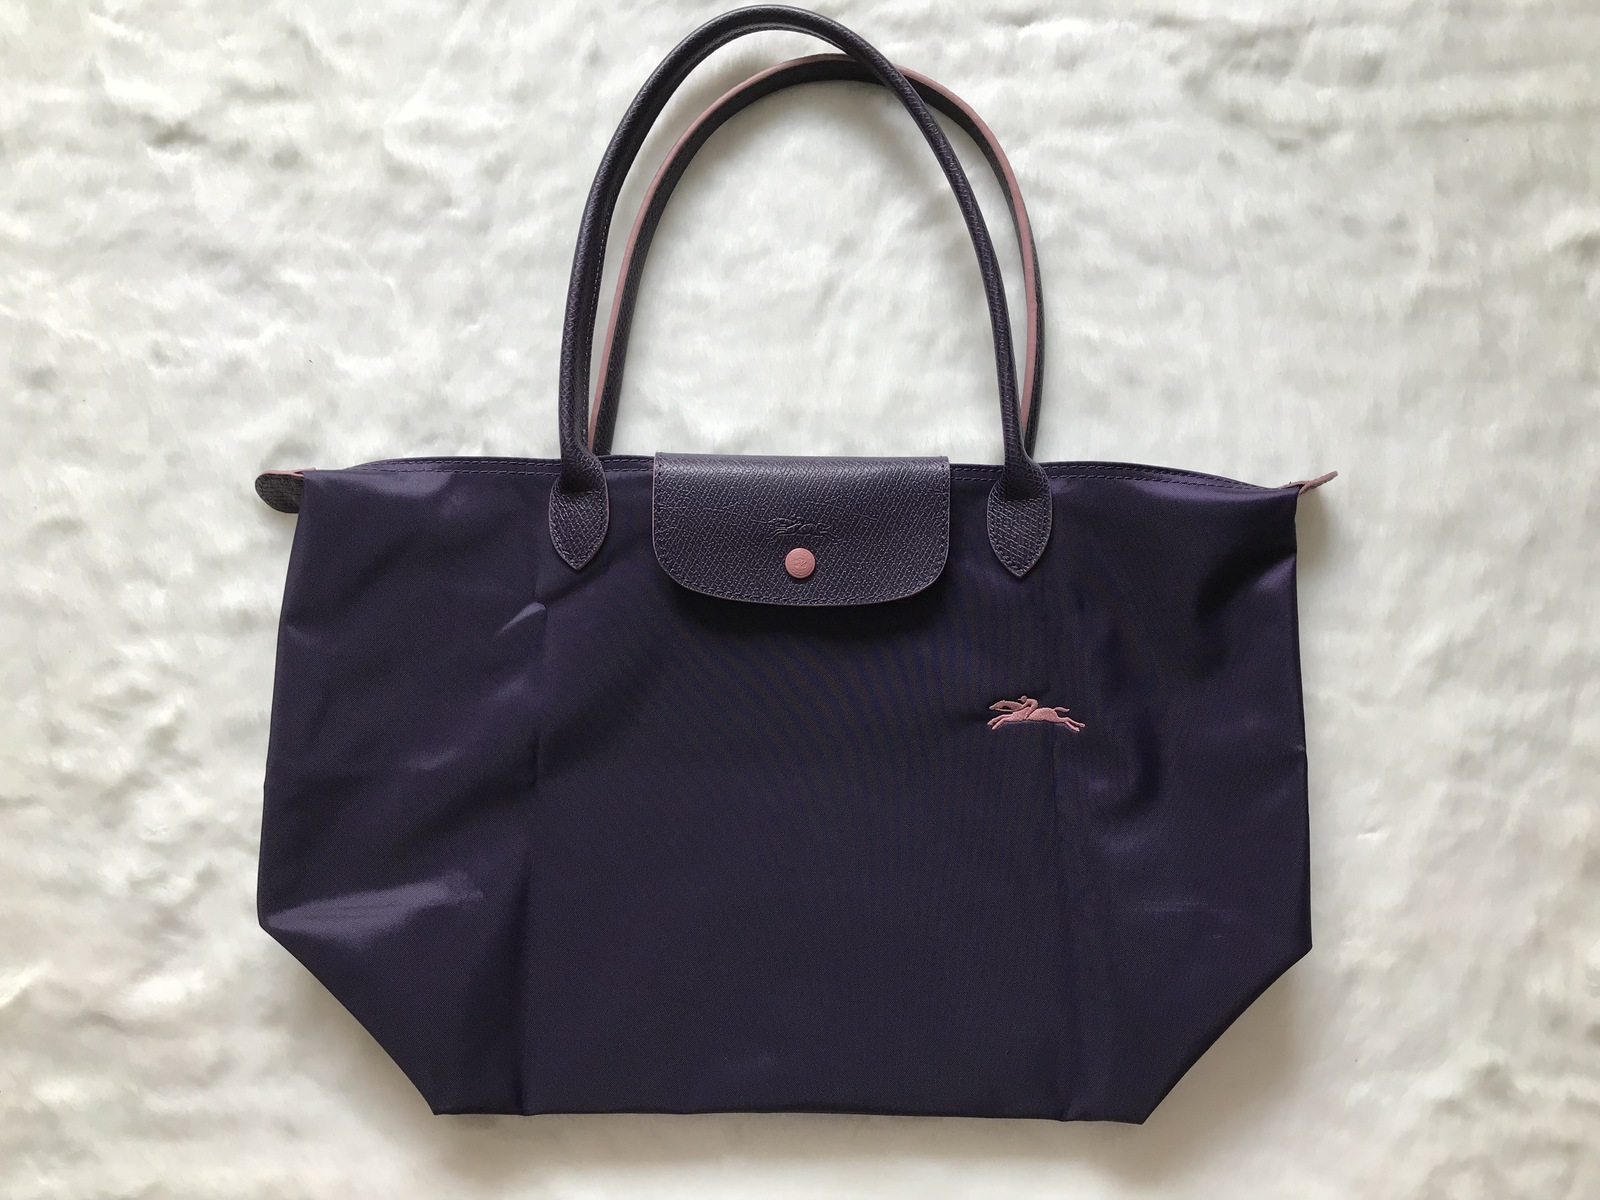 b027f5c311c France Made Longchamp Le Pliage Collection and 50 similar items. Img 2761